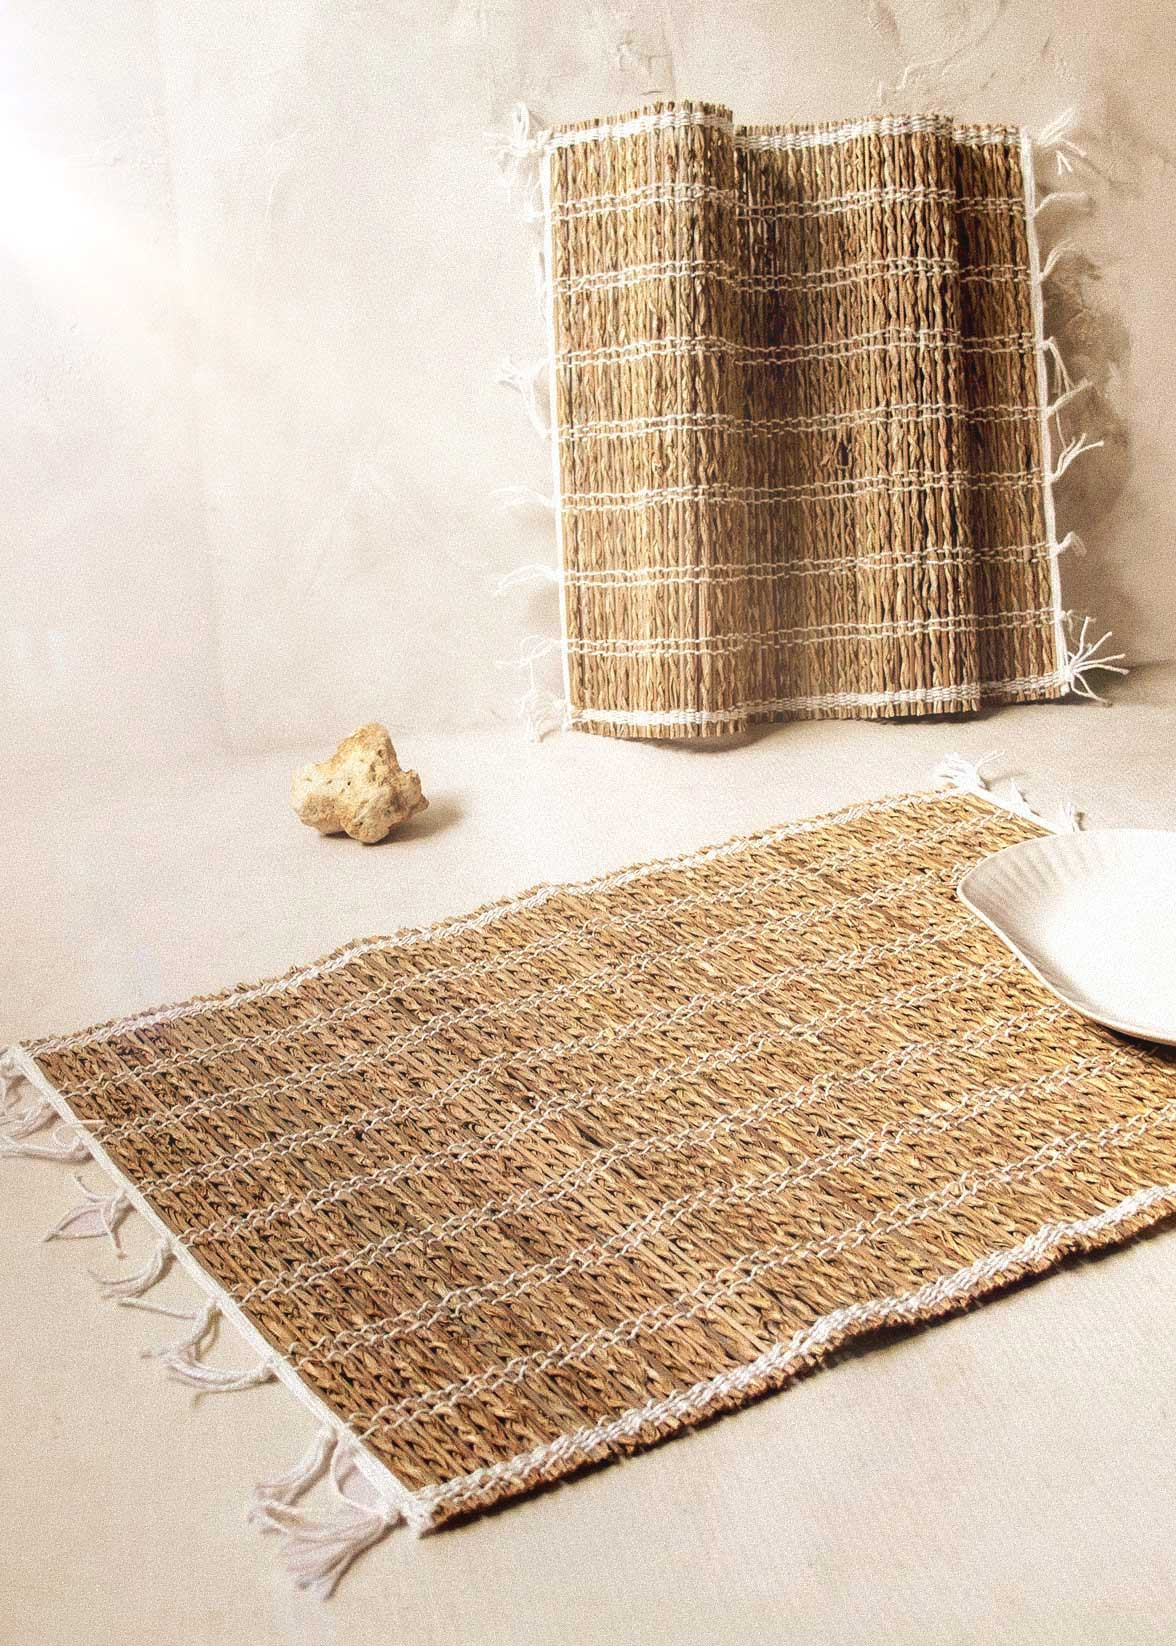 Banana Fiber Placemat, Set of 2